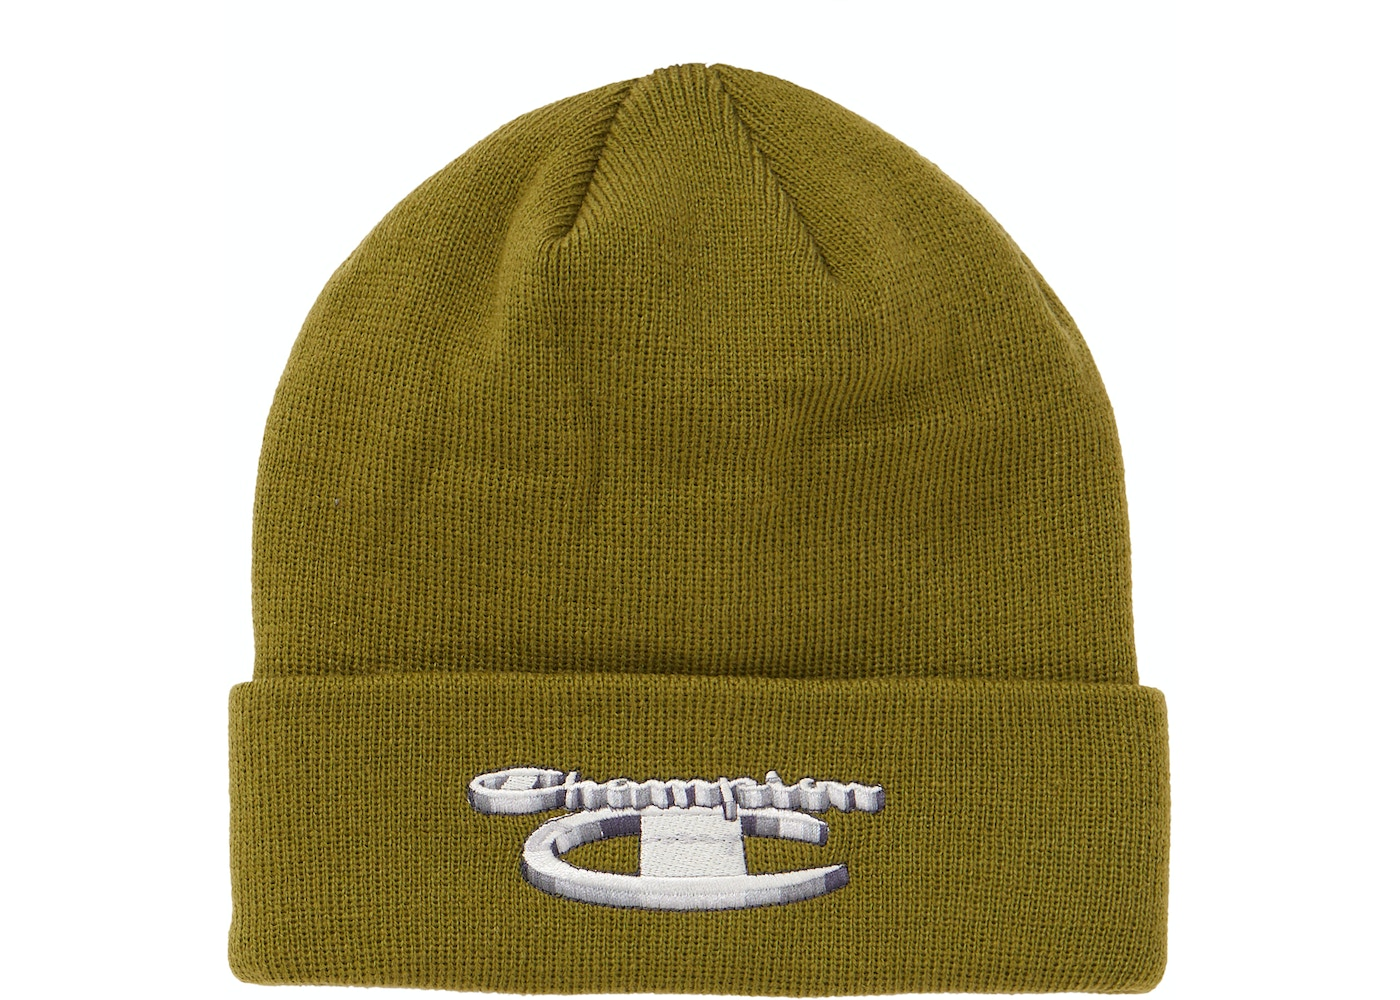 08883cee Supreme Champion 3D Metallic Beanie Olive. Champion 3D Metallic